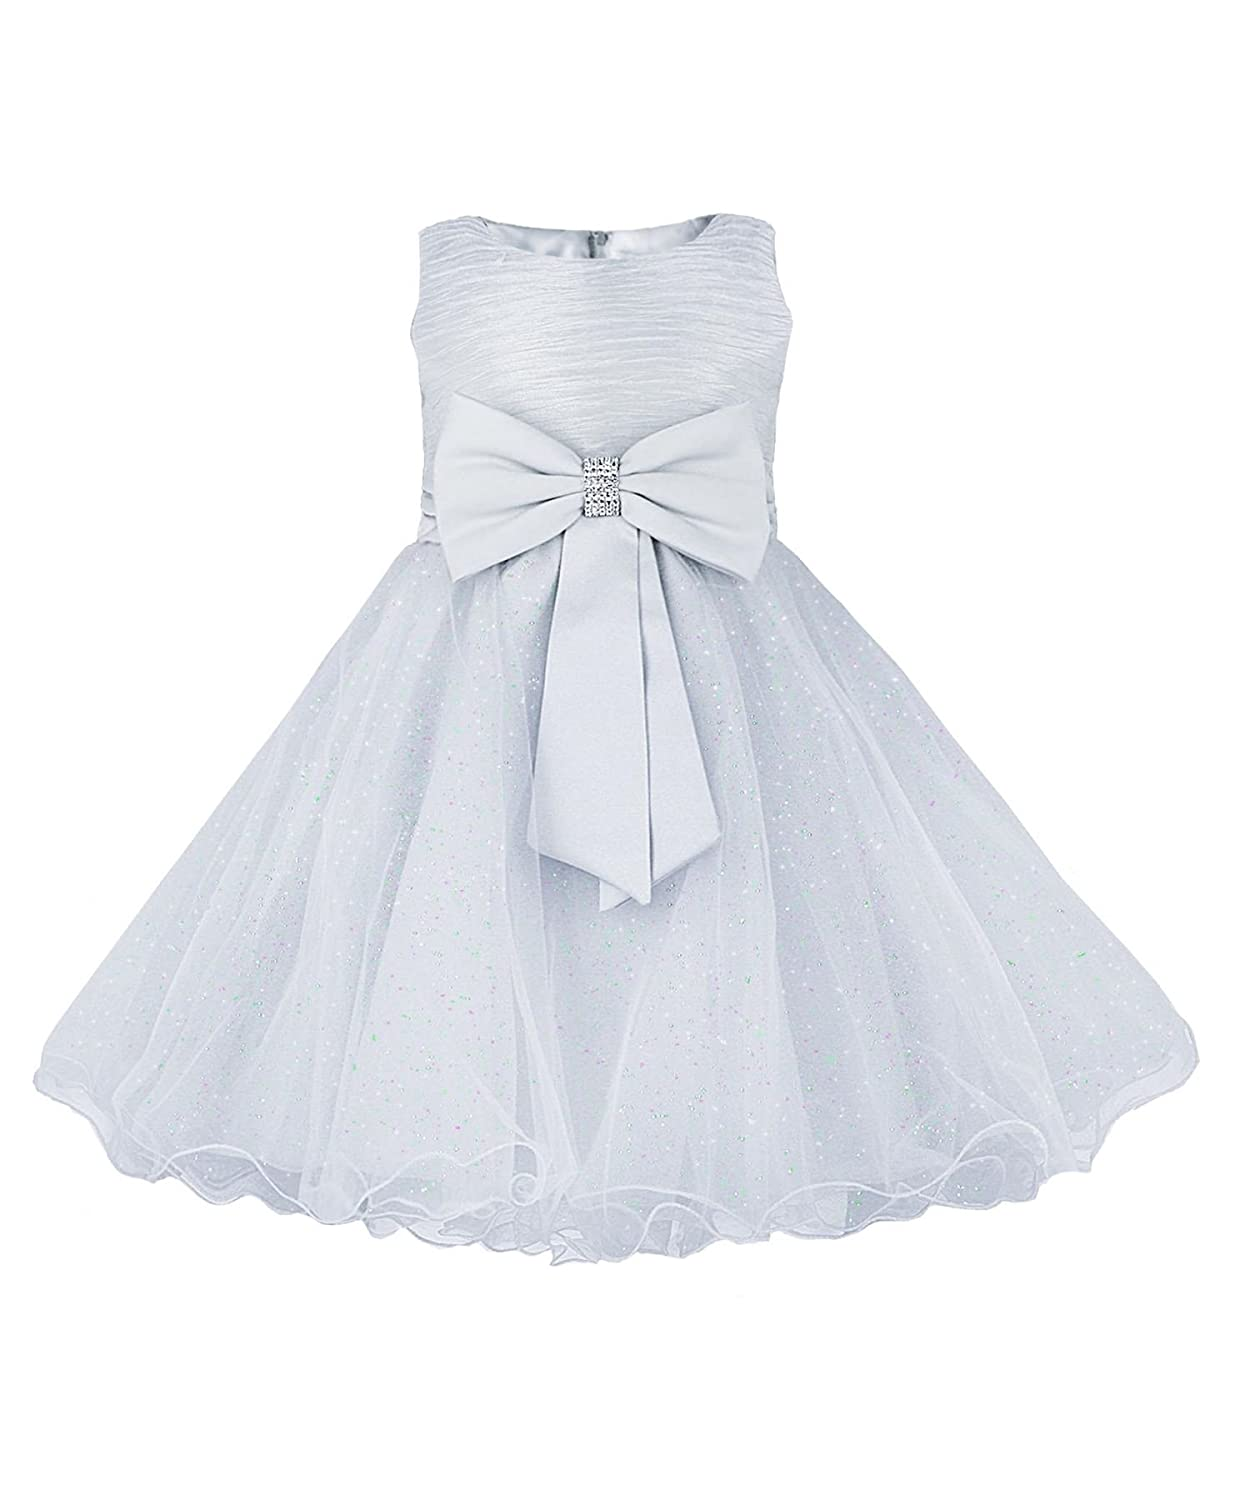 Rageit Lotmart Girls Party Tulle Dress Bow Detail Flower Girl